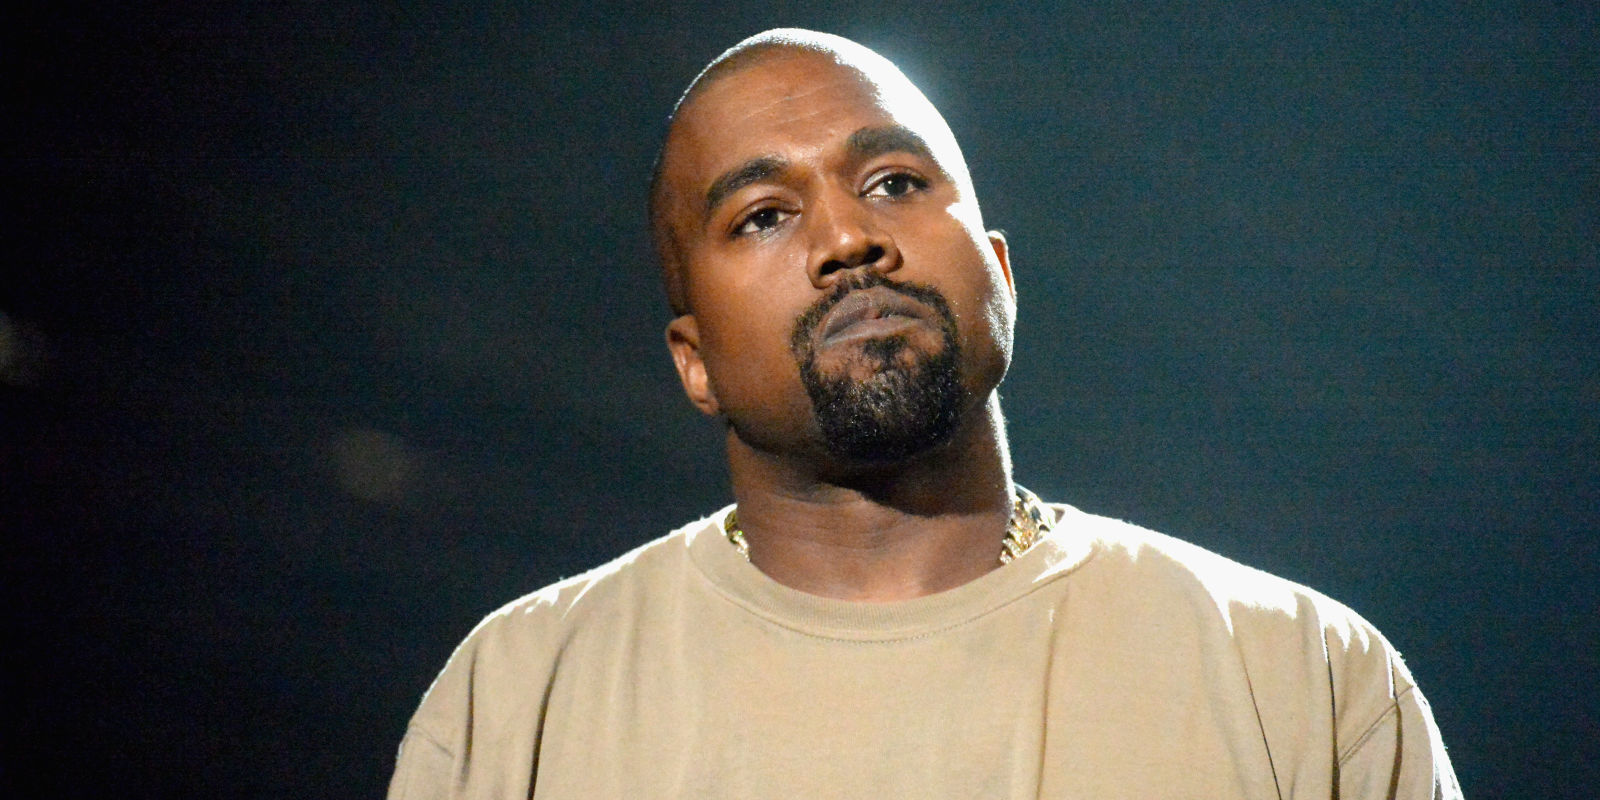 Should We Support #Kanye2020?